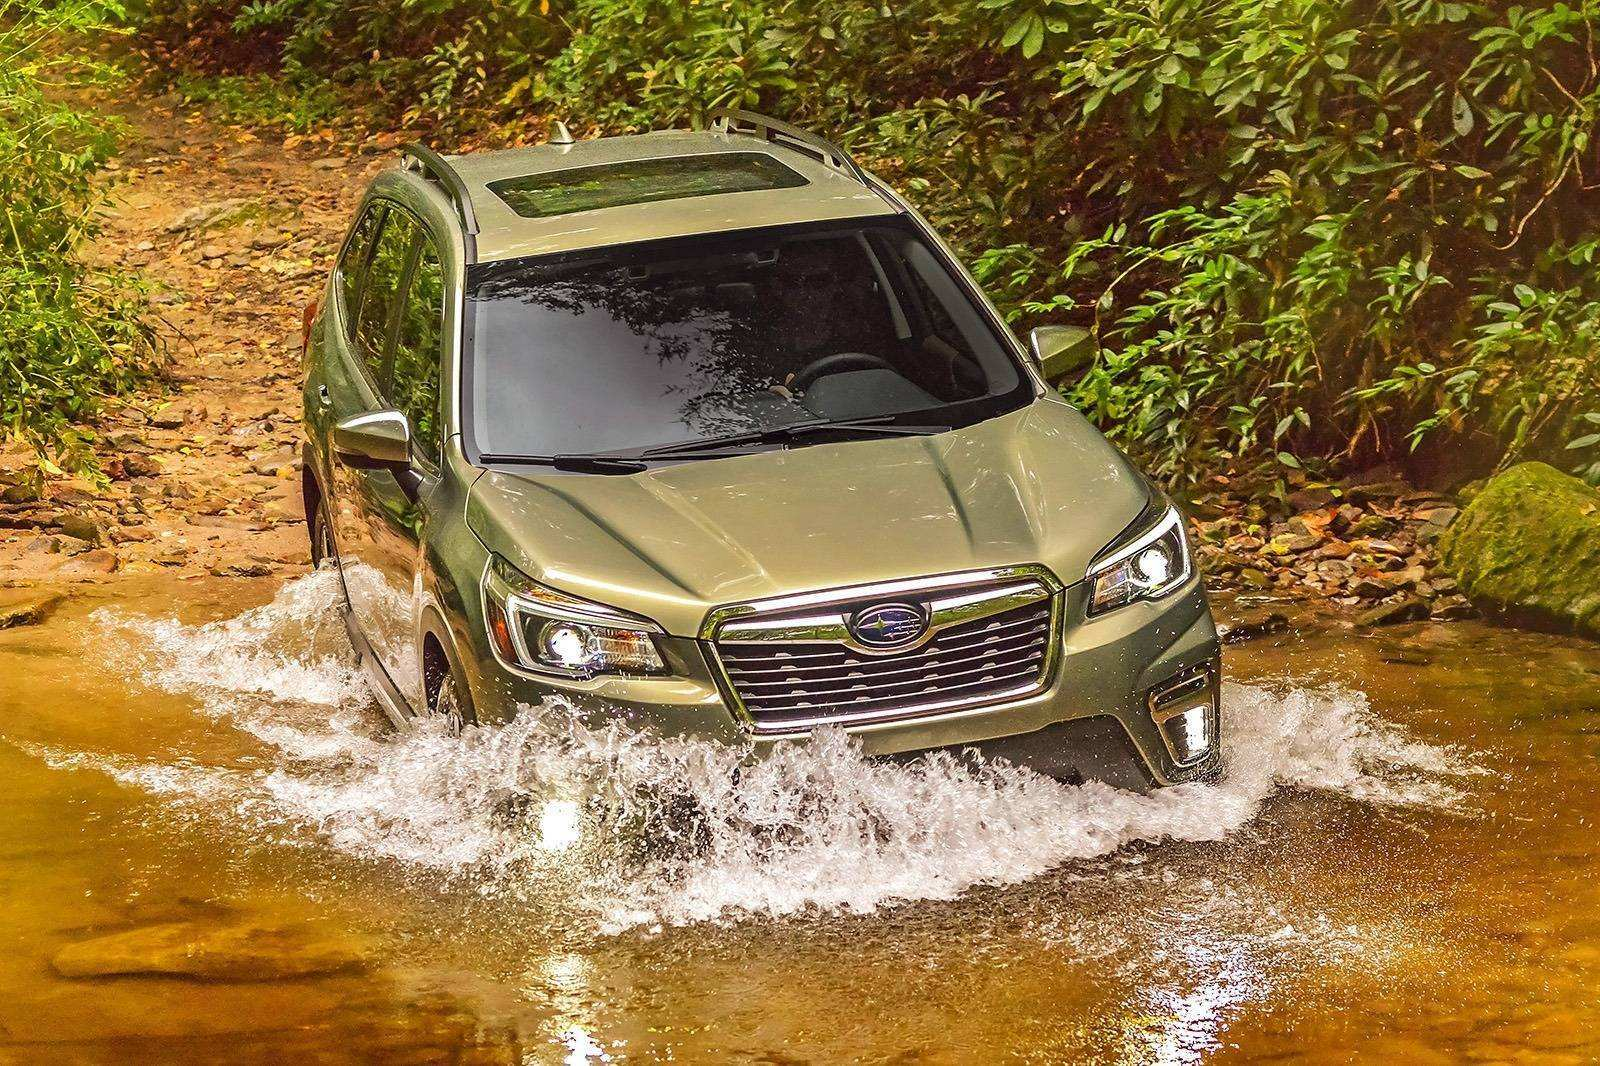 72 All New 2019 Subaru Forester Mpg Performance